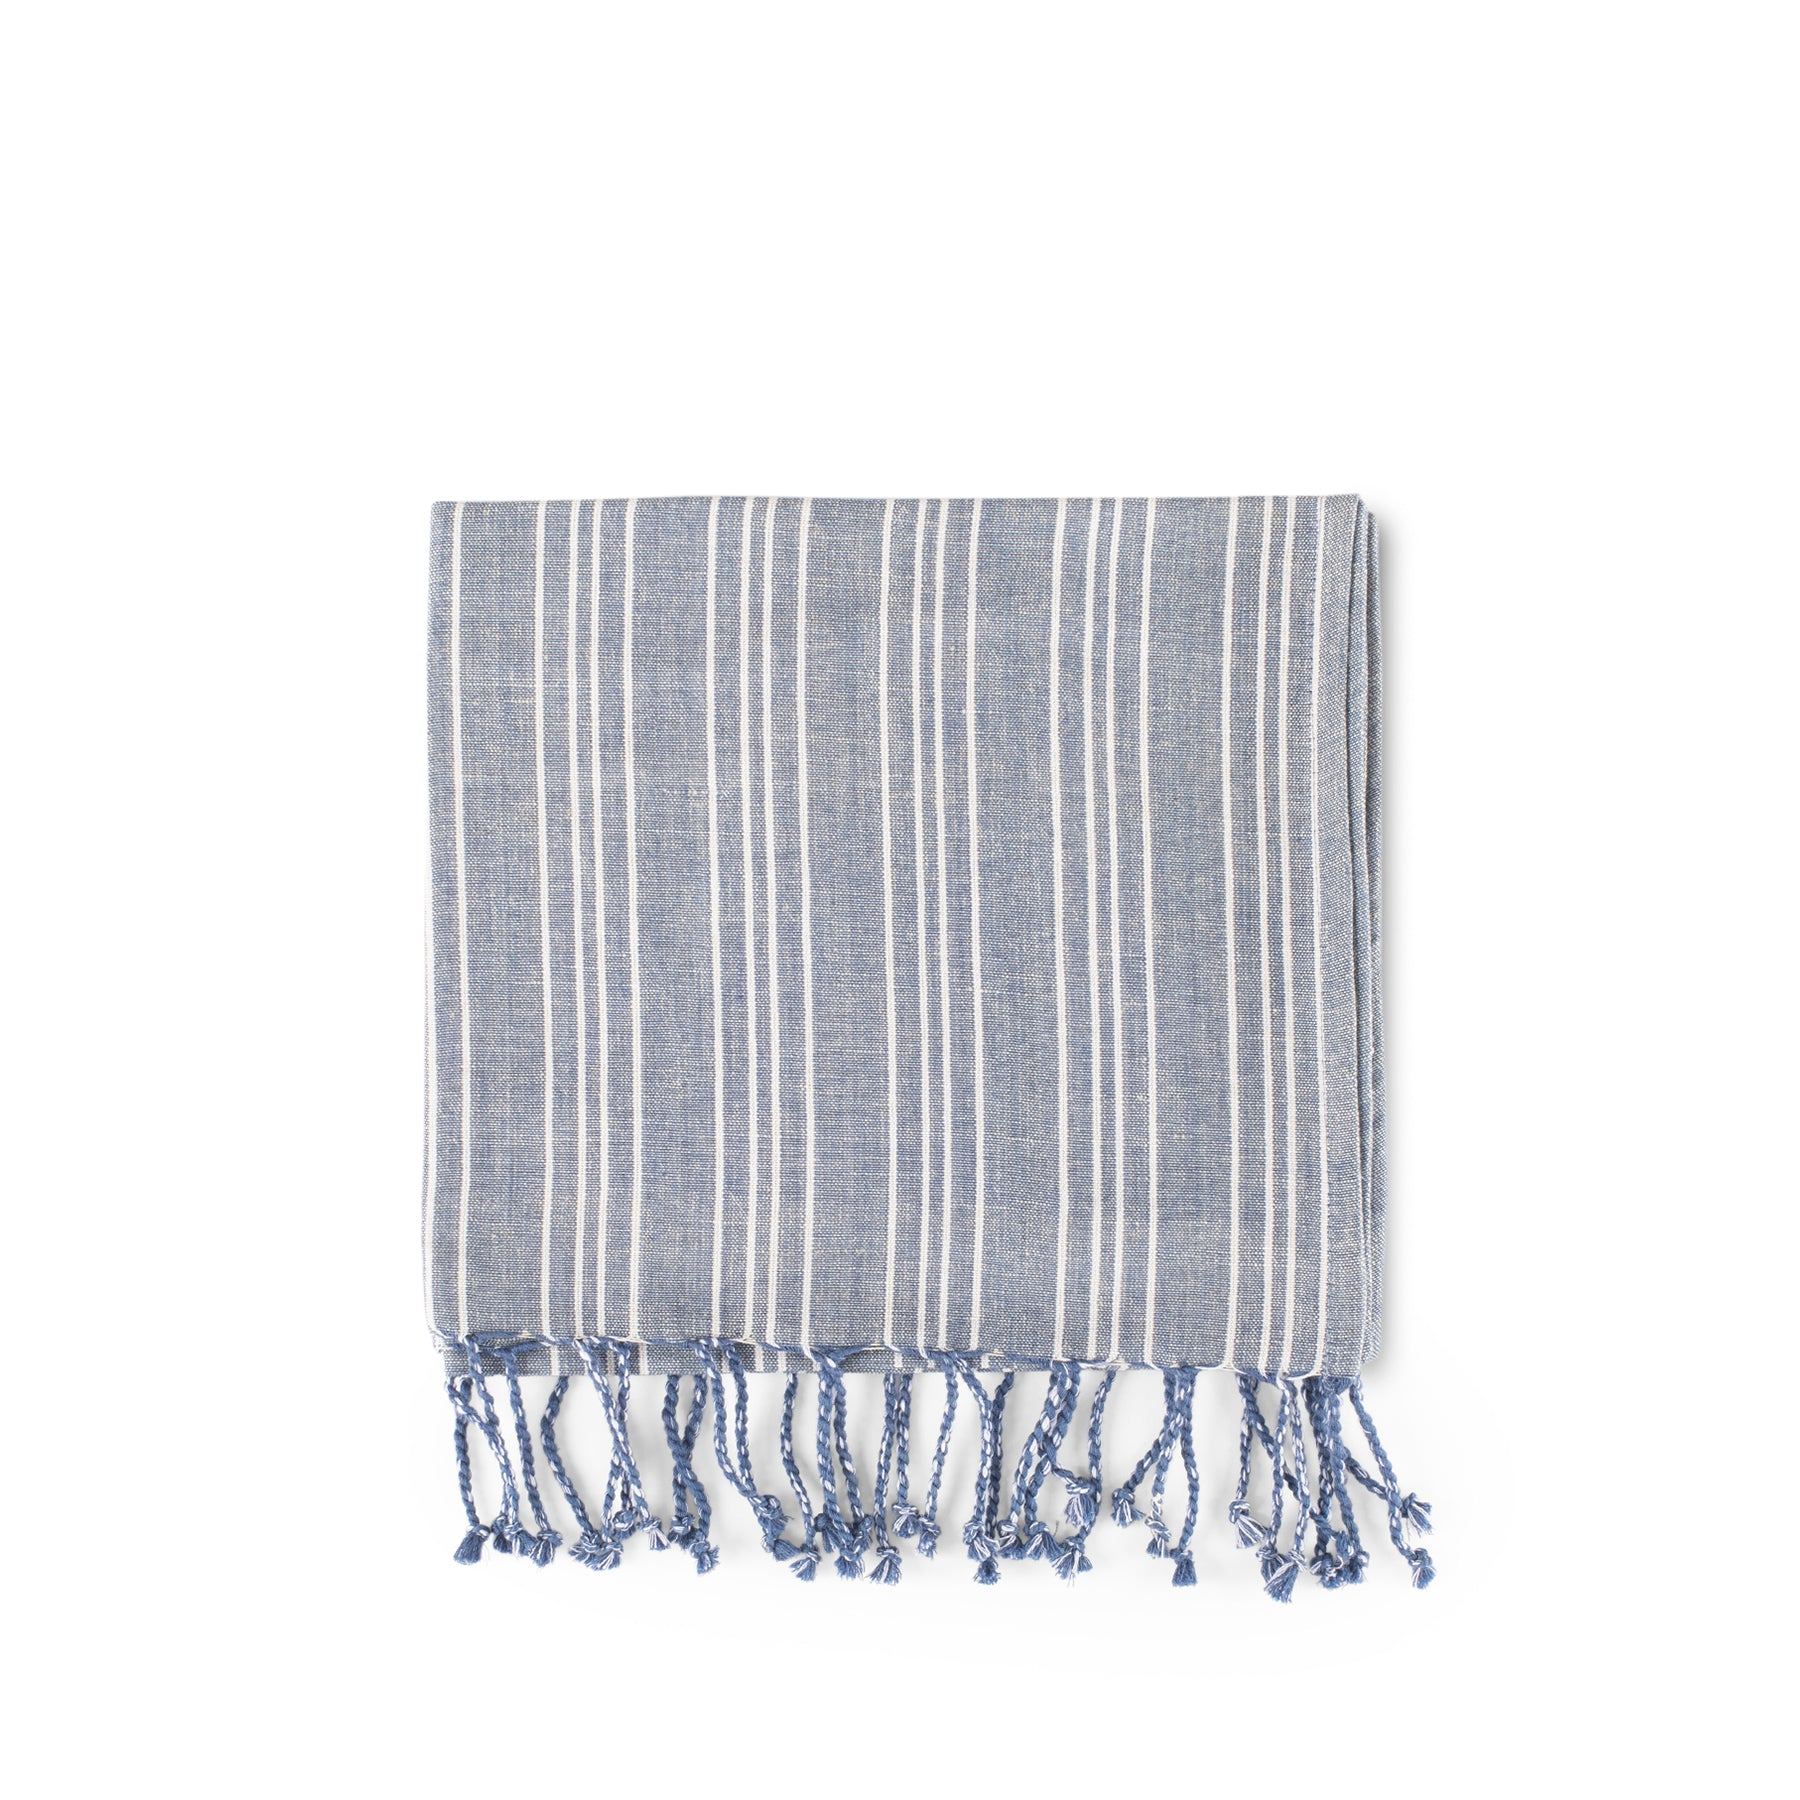 Cotton Linen Ticking Stripe Tea Towel in Blue with Ivory Zoom Image 1